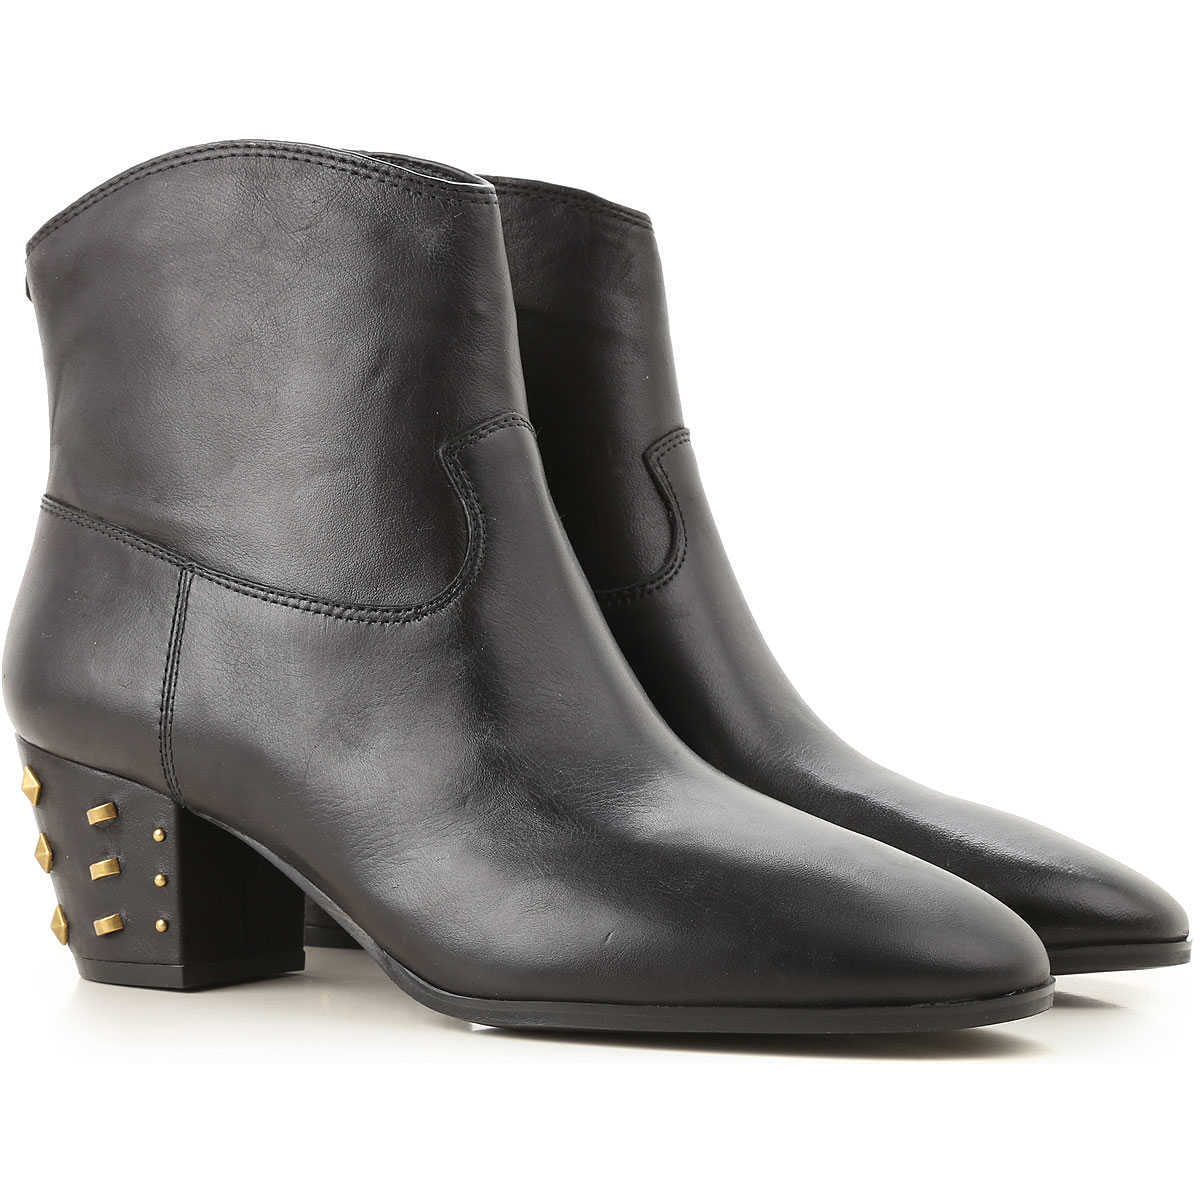 Michael Kors Boots for Women 3.5 4.5 Booties On Sale in Outlet UK - GOOFASH